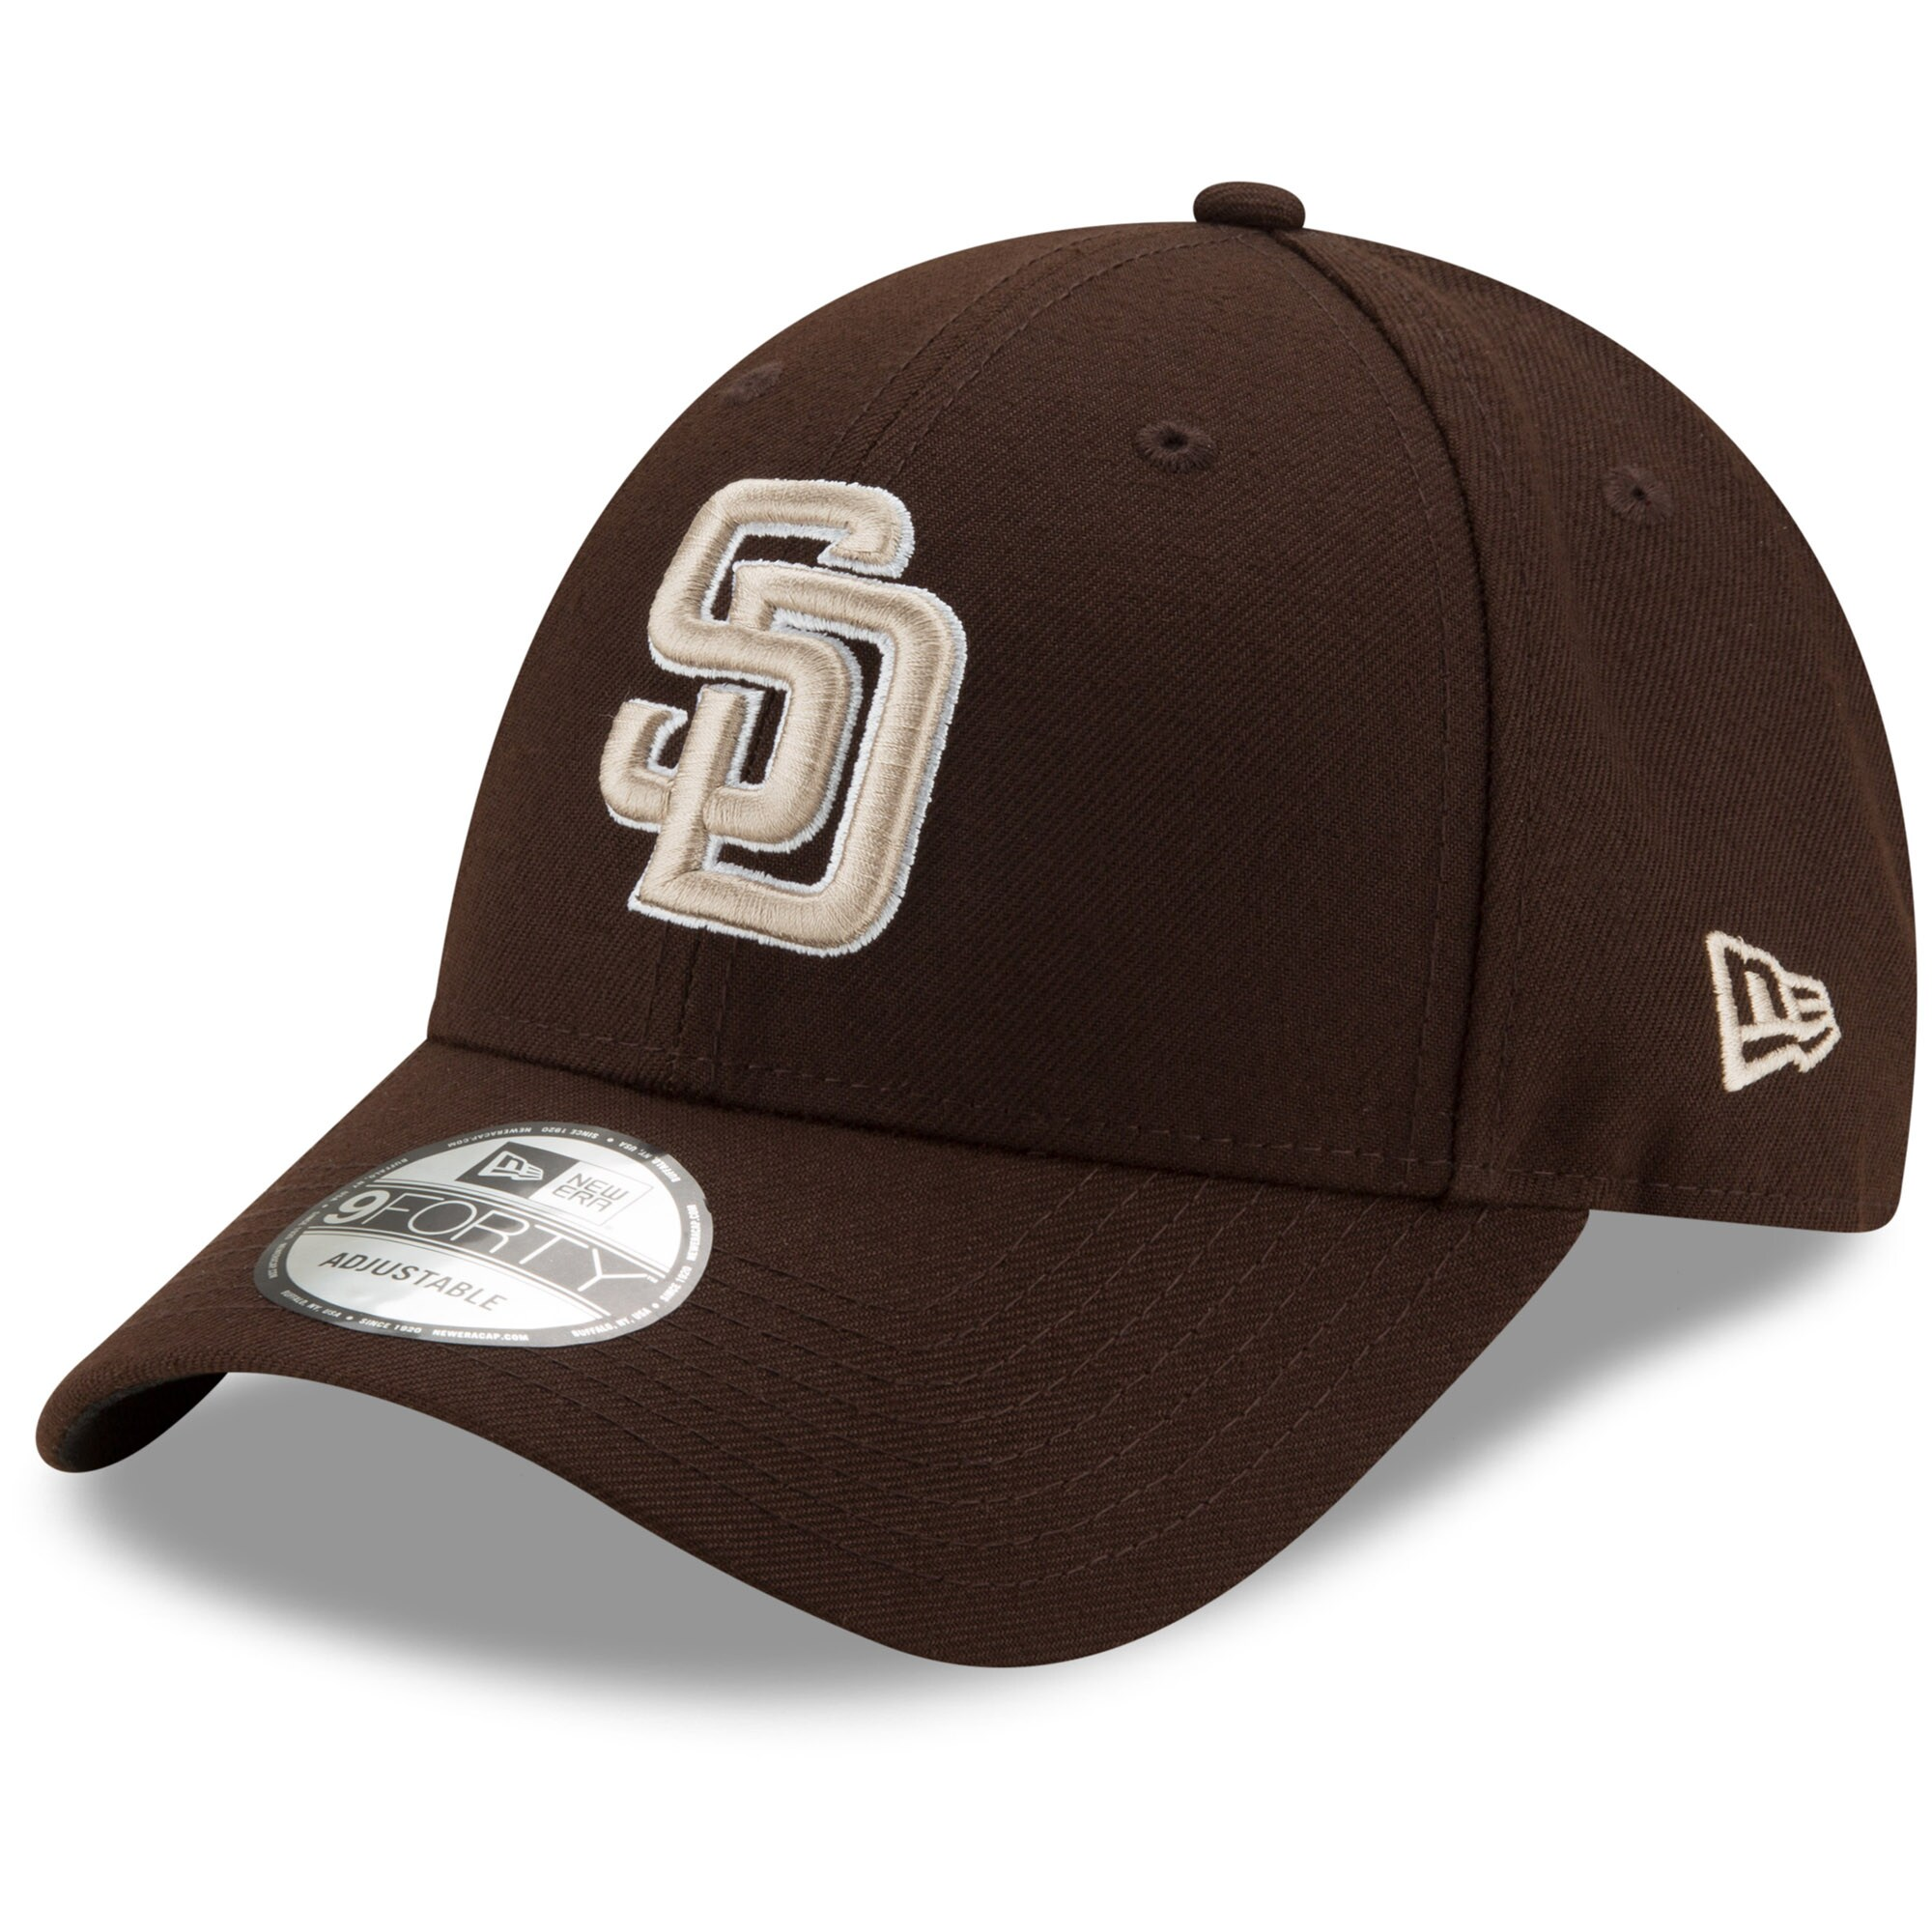 San Diego Padres New Era Alternate The League 9FORTY Adjustable Hat - Brown